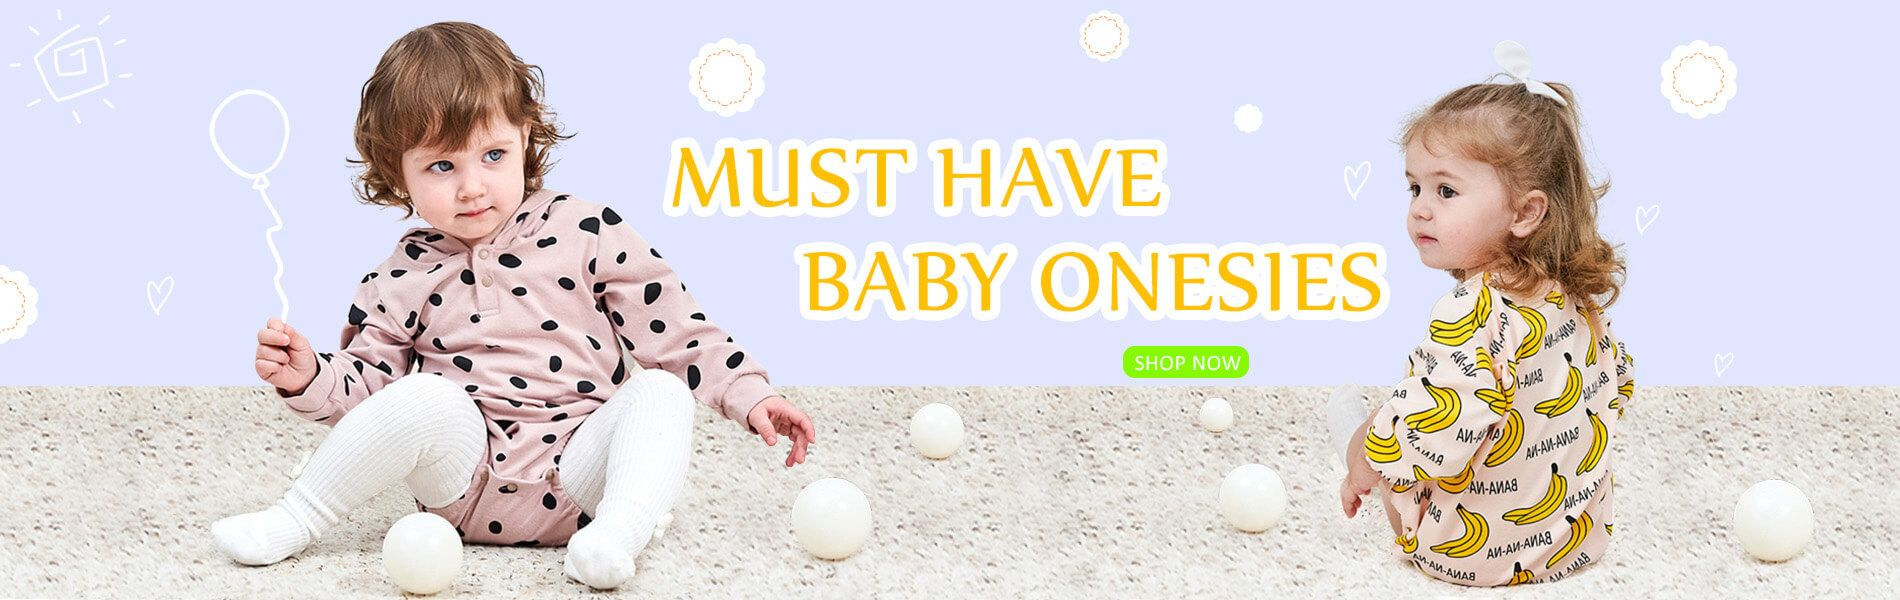 https://www.kiskissing.com/wholesale-babies-rompers.html